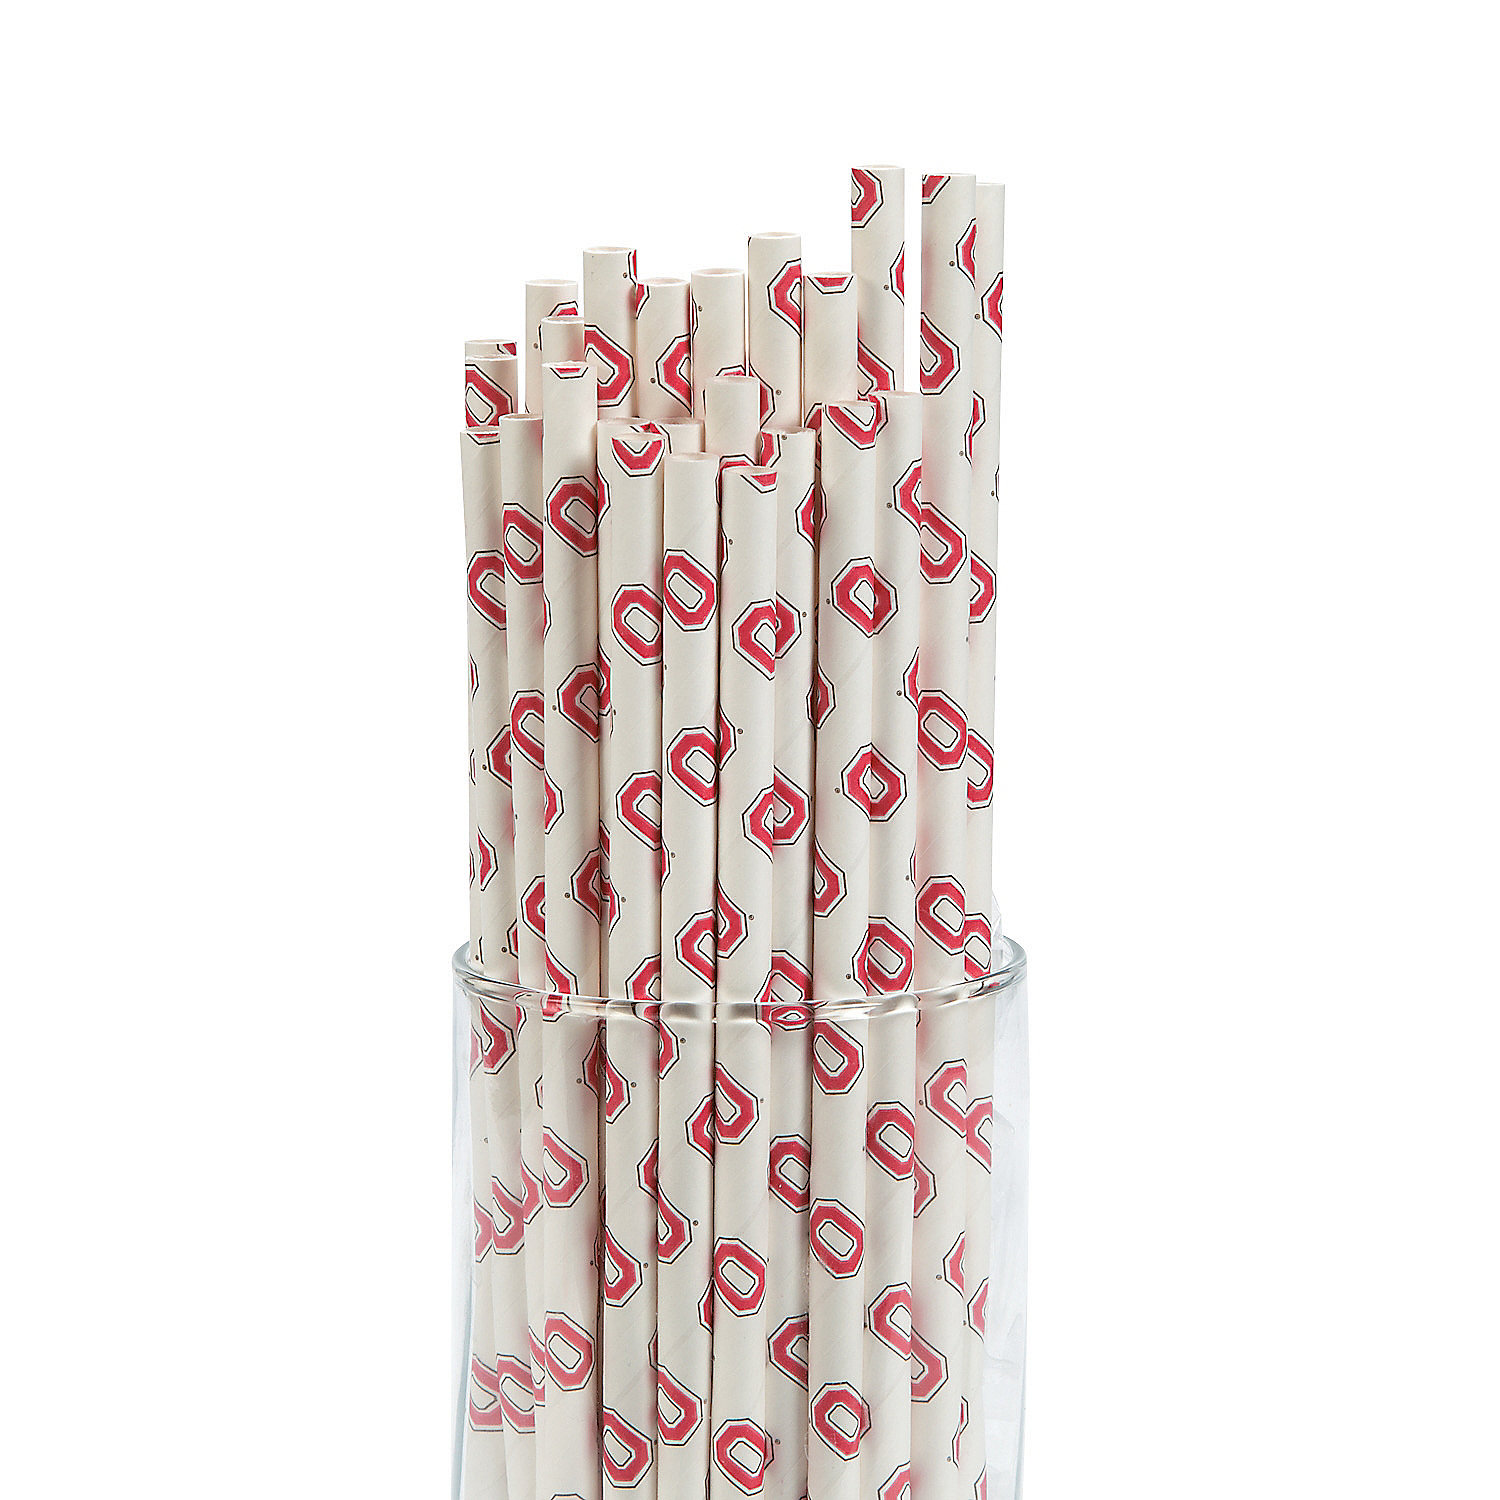 IN-13700693 NCAA Ohio State Paper Straws 24 Piece(s)